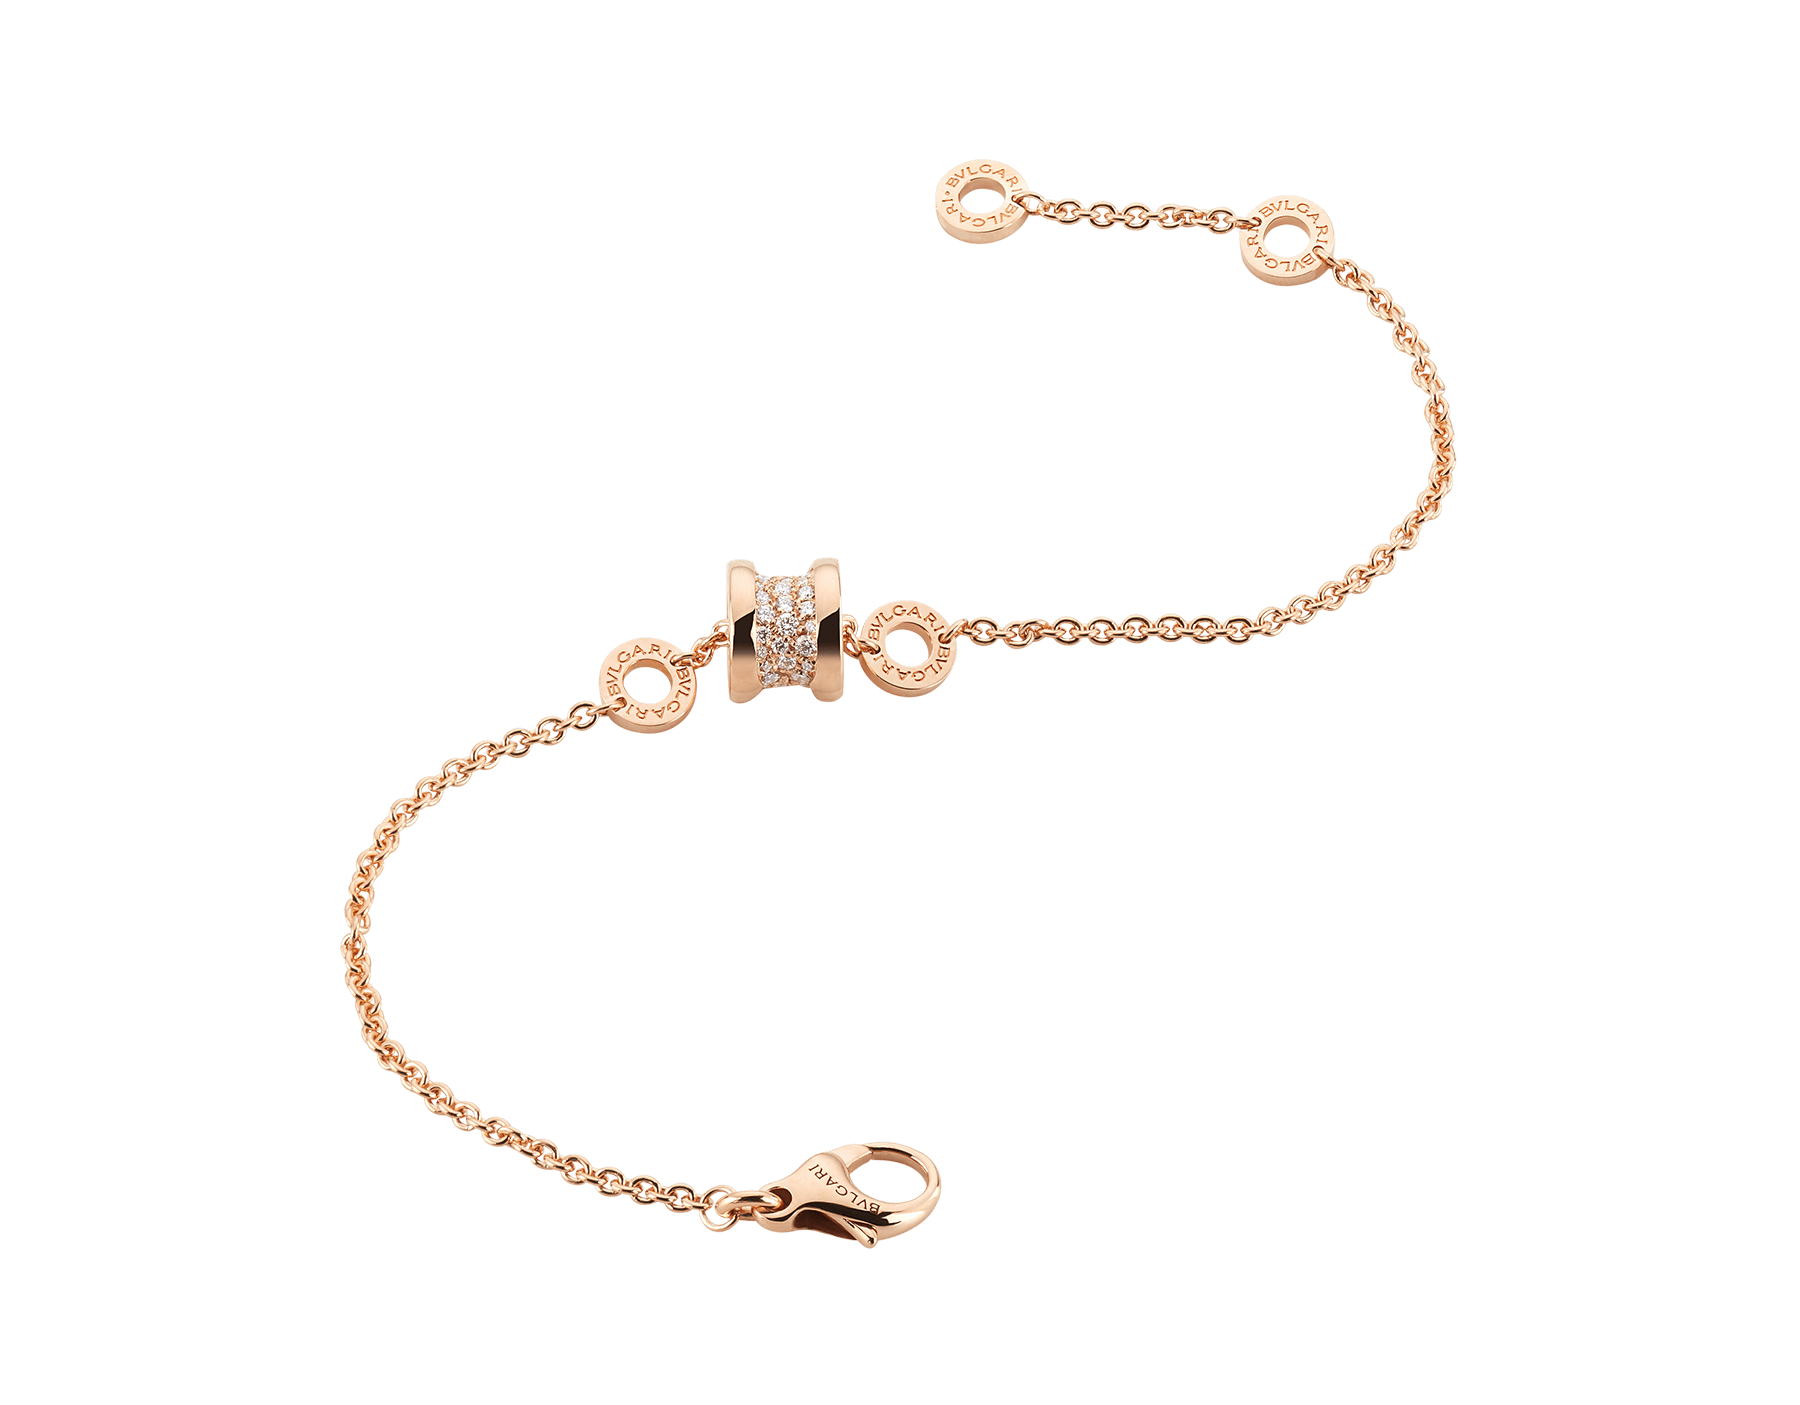 B.zero1 soft bracelet in 18 kt rose gold, set with pavé diamonds on the spiral. BR857358 image 2